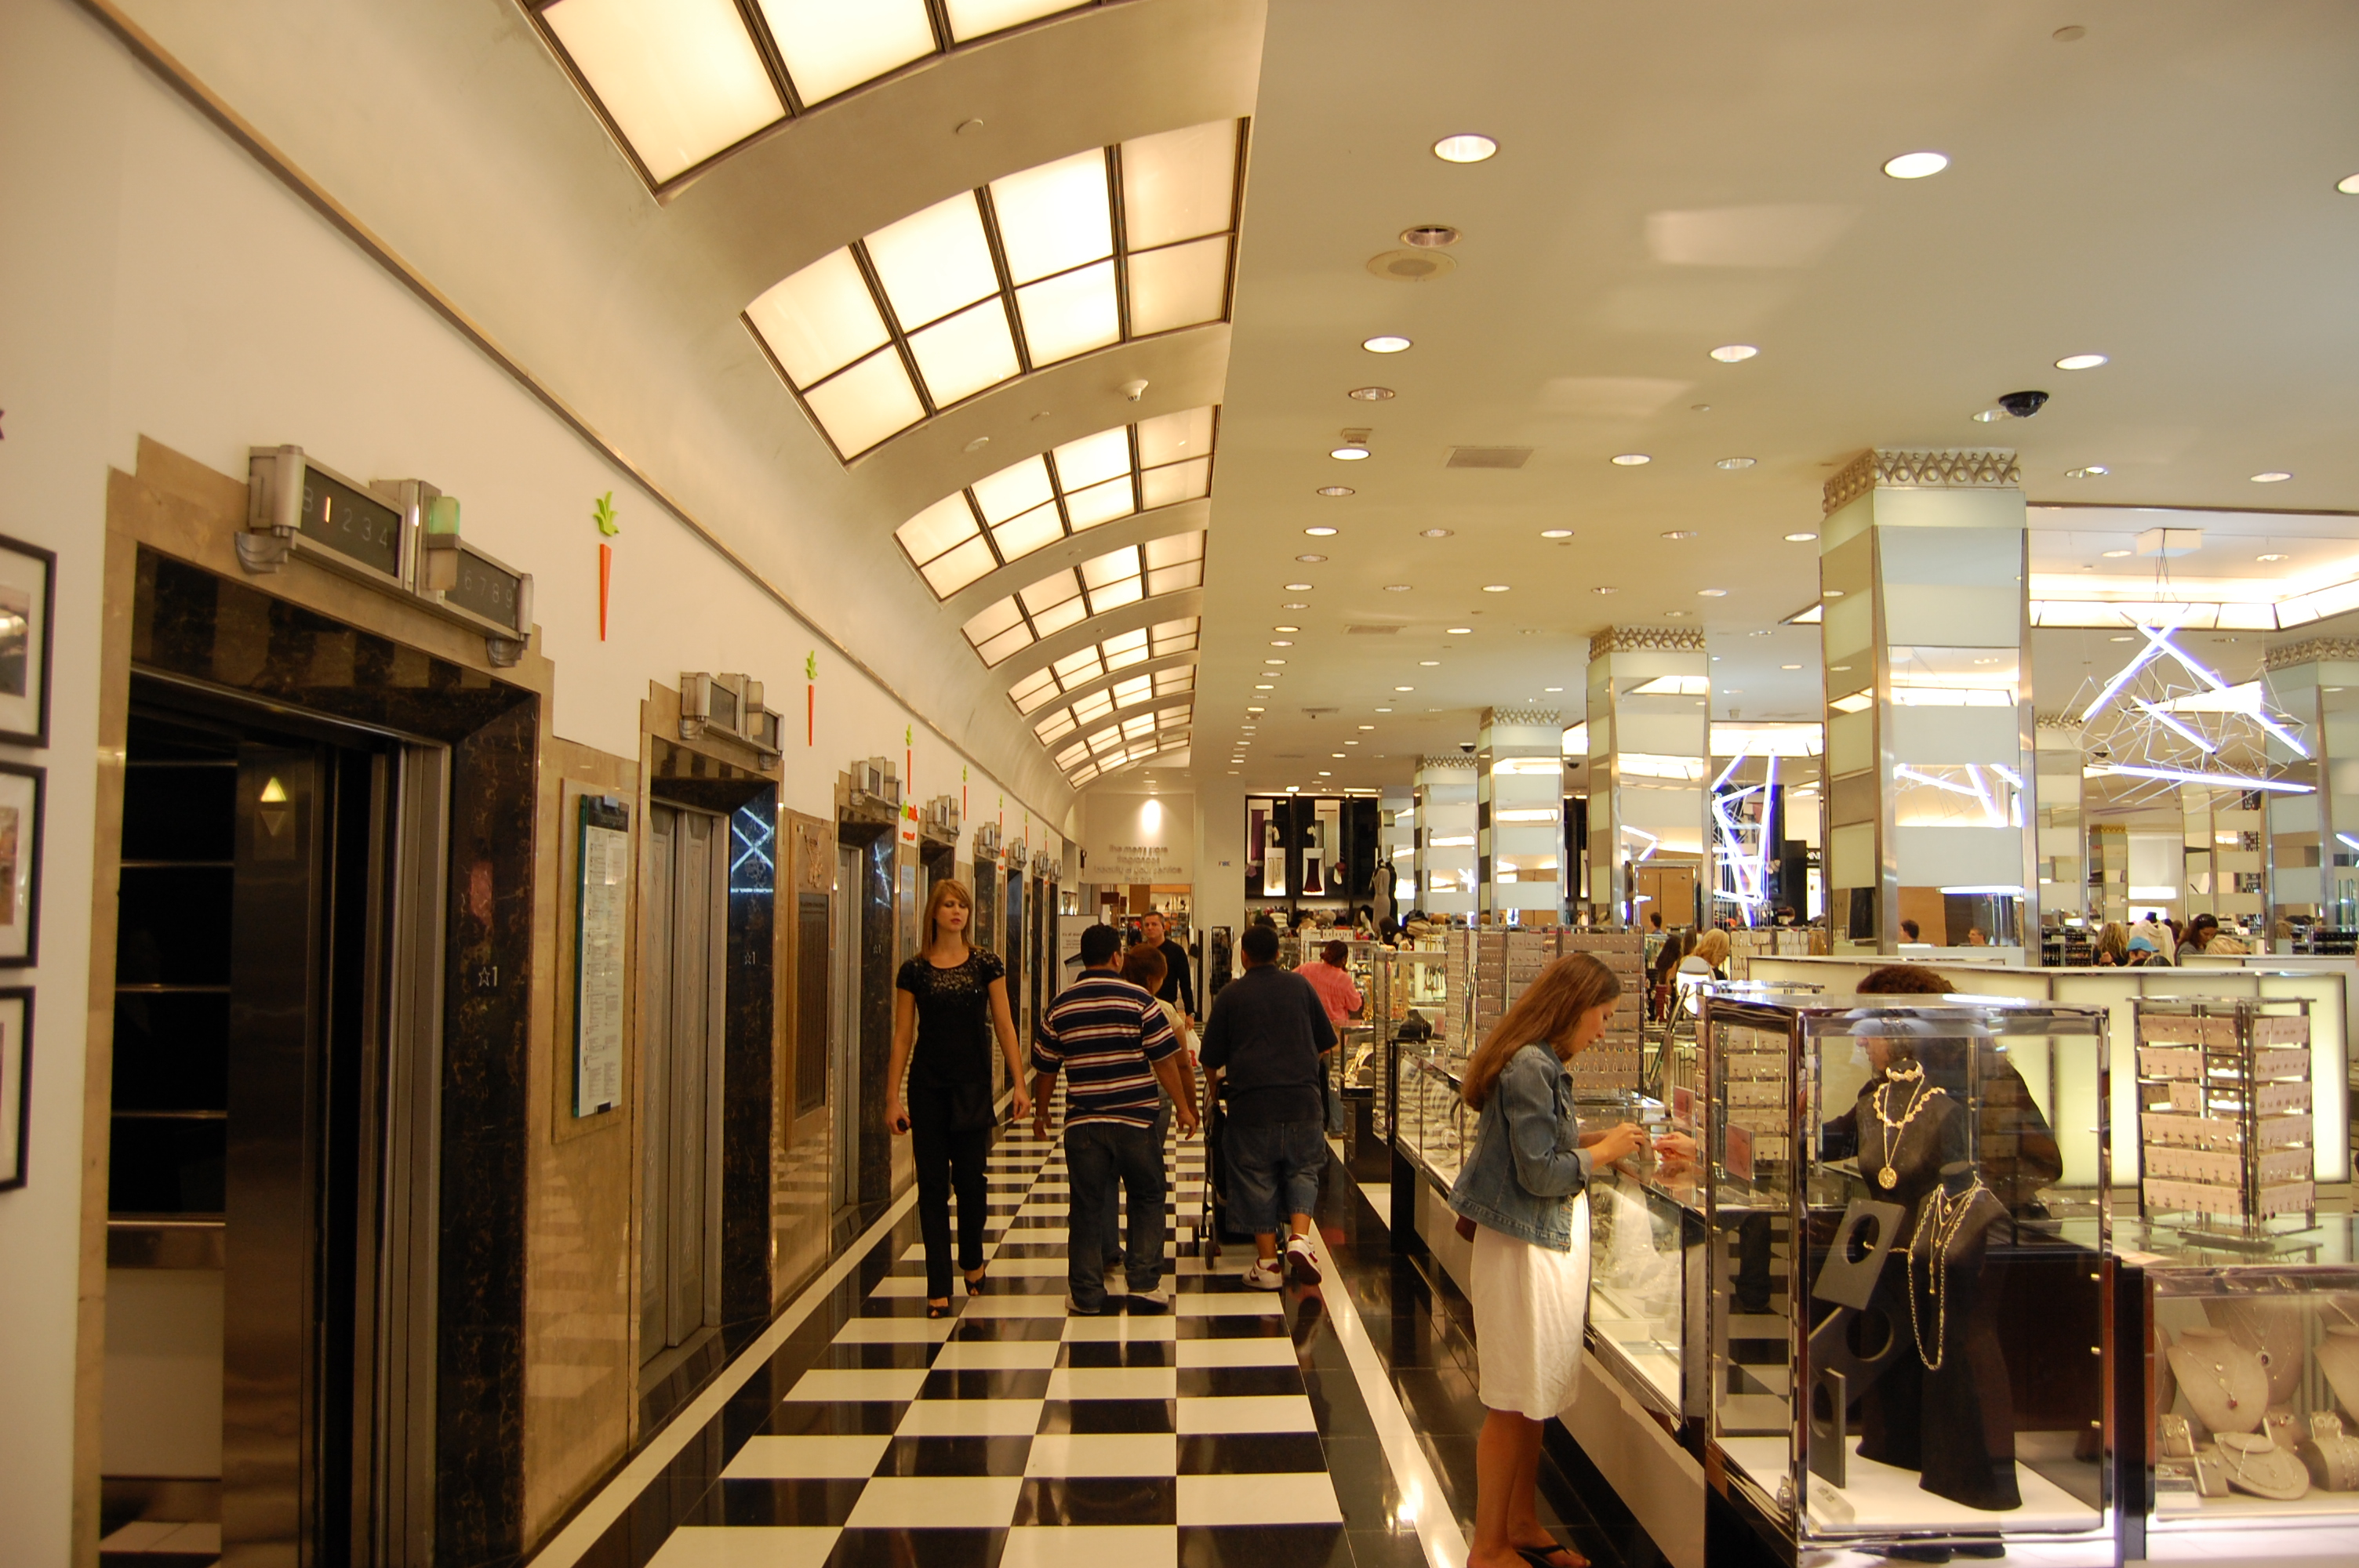 For more than half a century, the New York City-born Century 21 discount department store has been a mecca for the deal-hunting masses who come in search of designer goods at deeply discounted rates. Merchandise is priced at up to 65 percent off of retail rates, with .